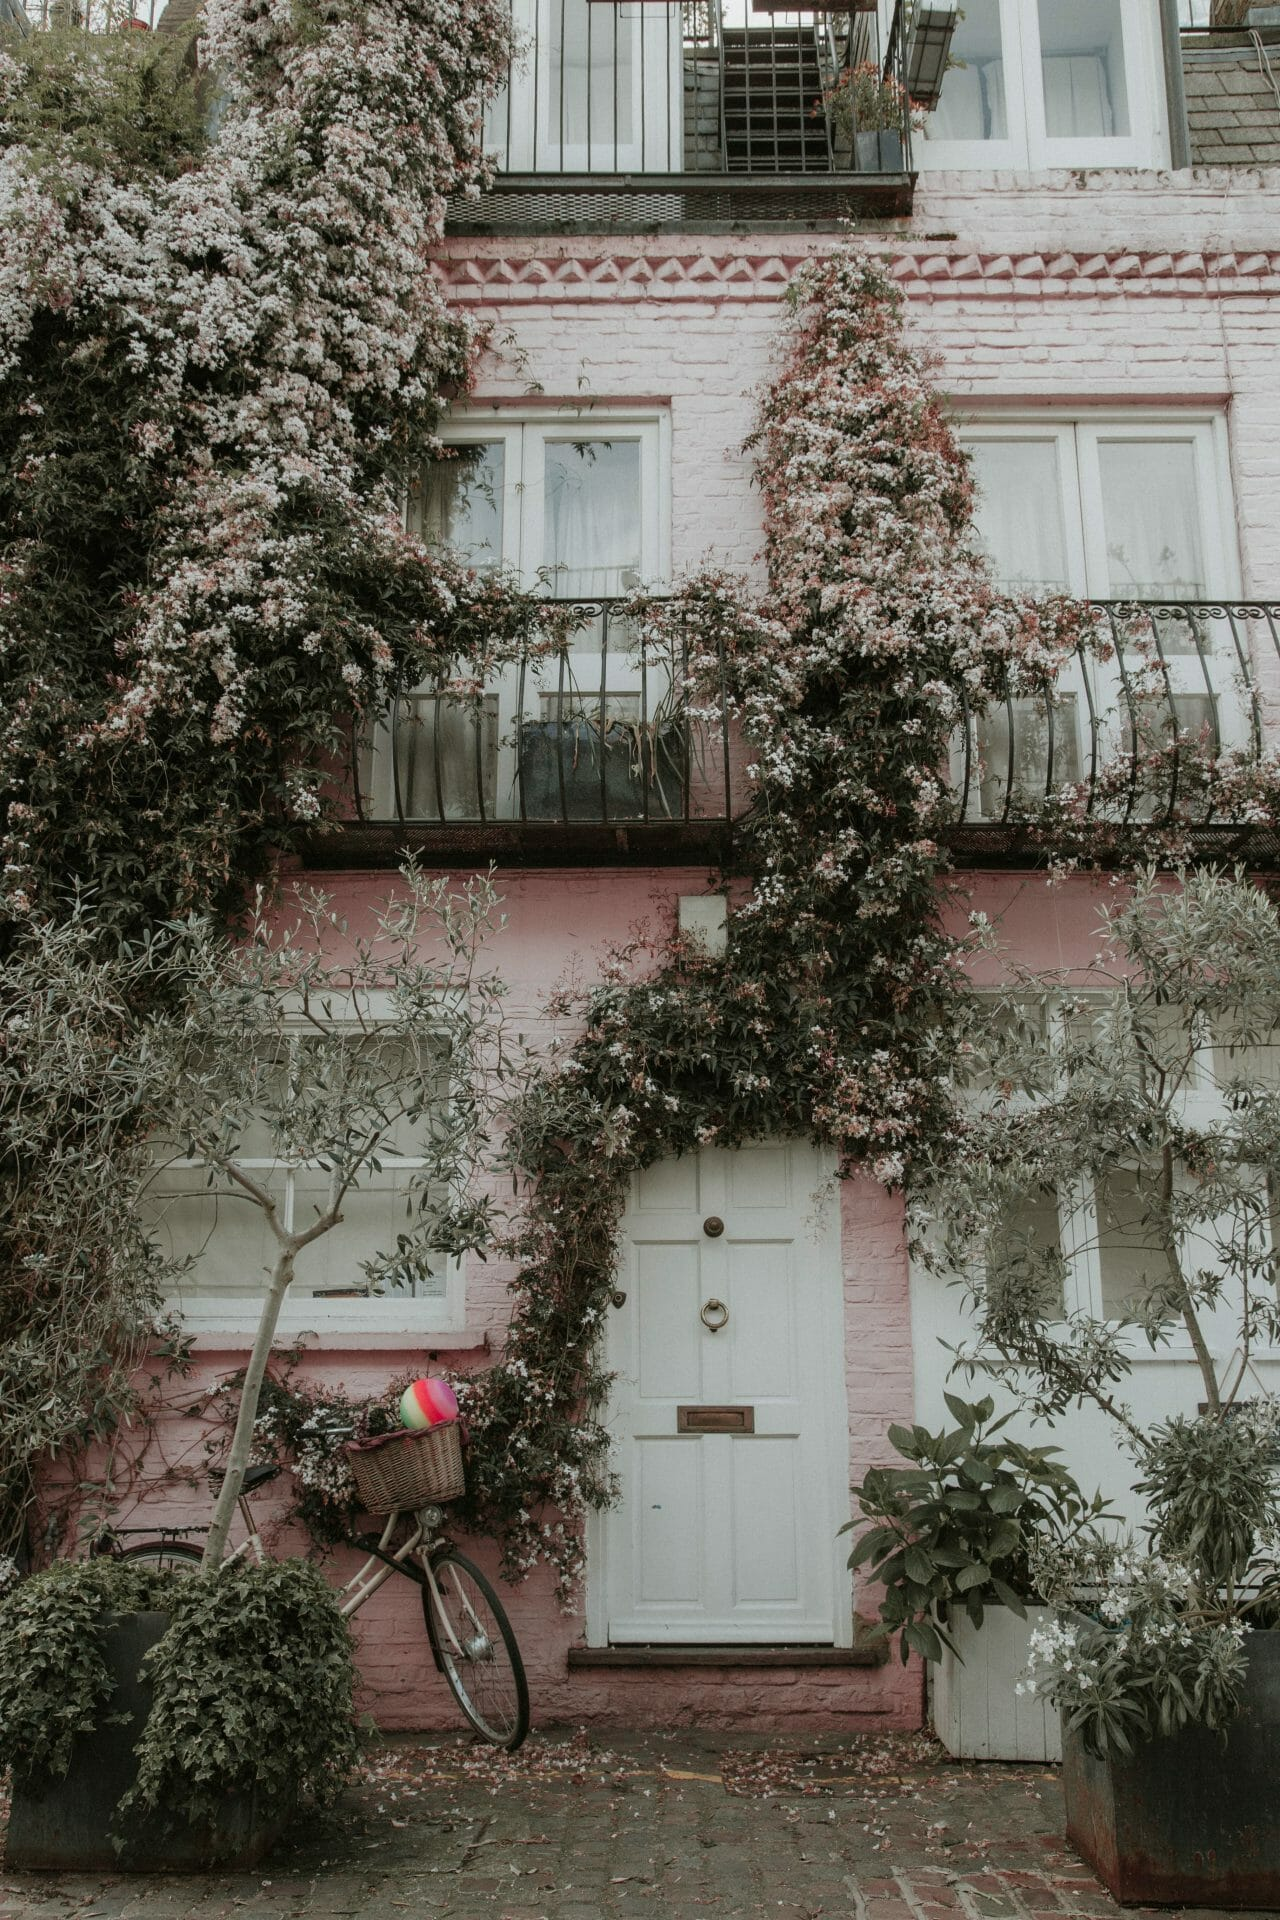 Picture of a pink home with flowers growing up the front for Real Estate News for Investors Podcast Episode #692